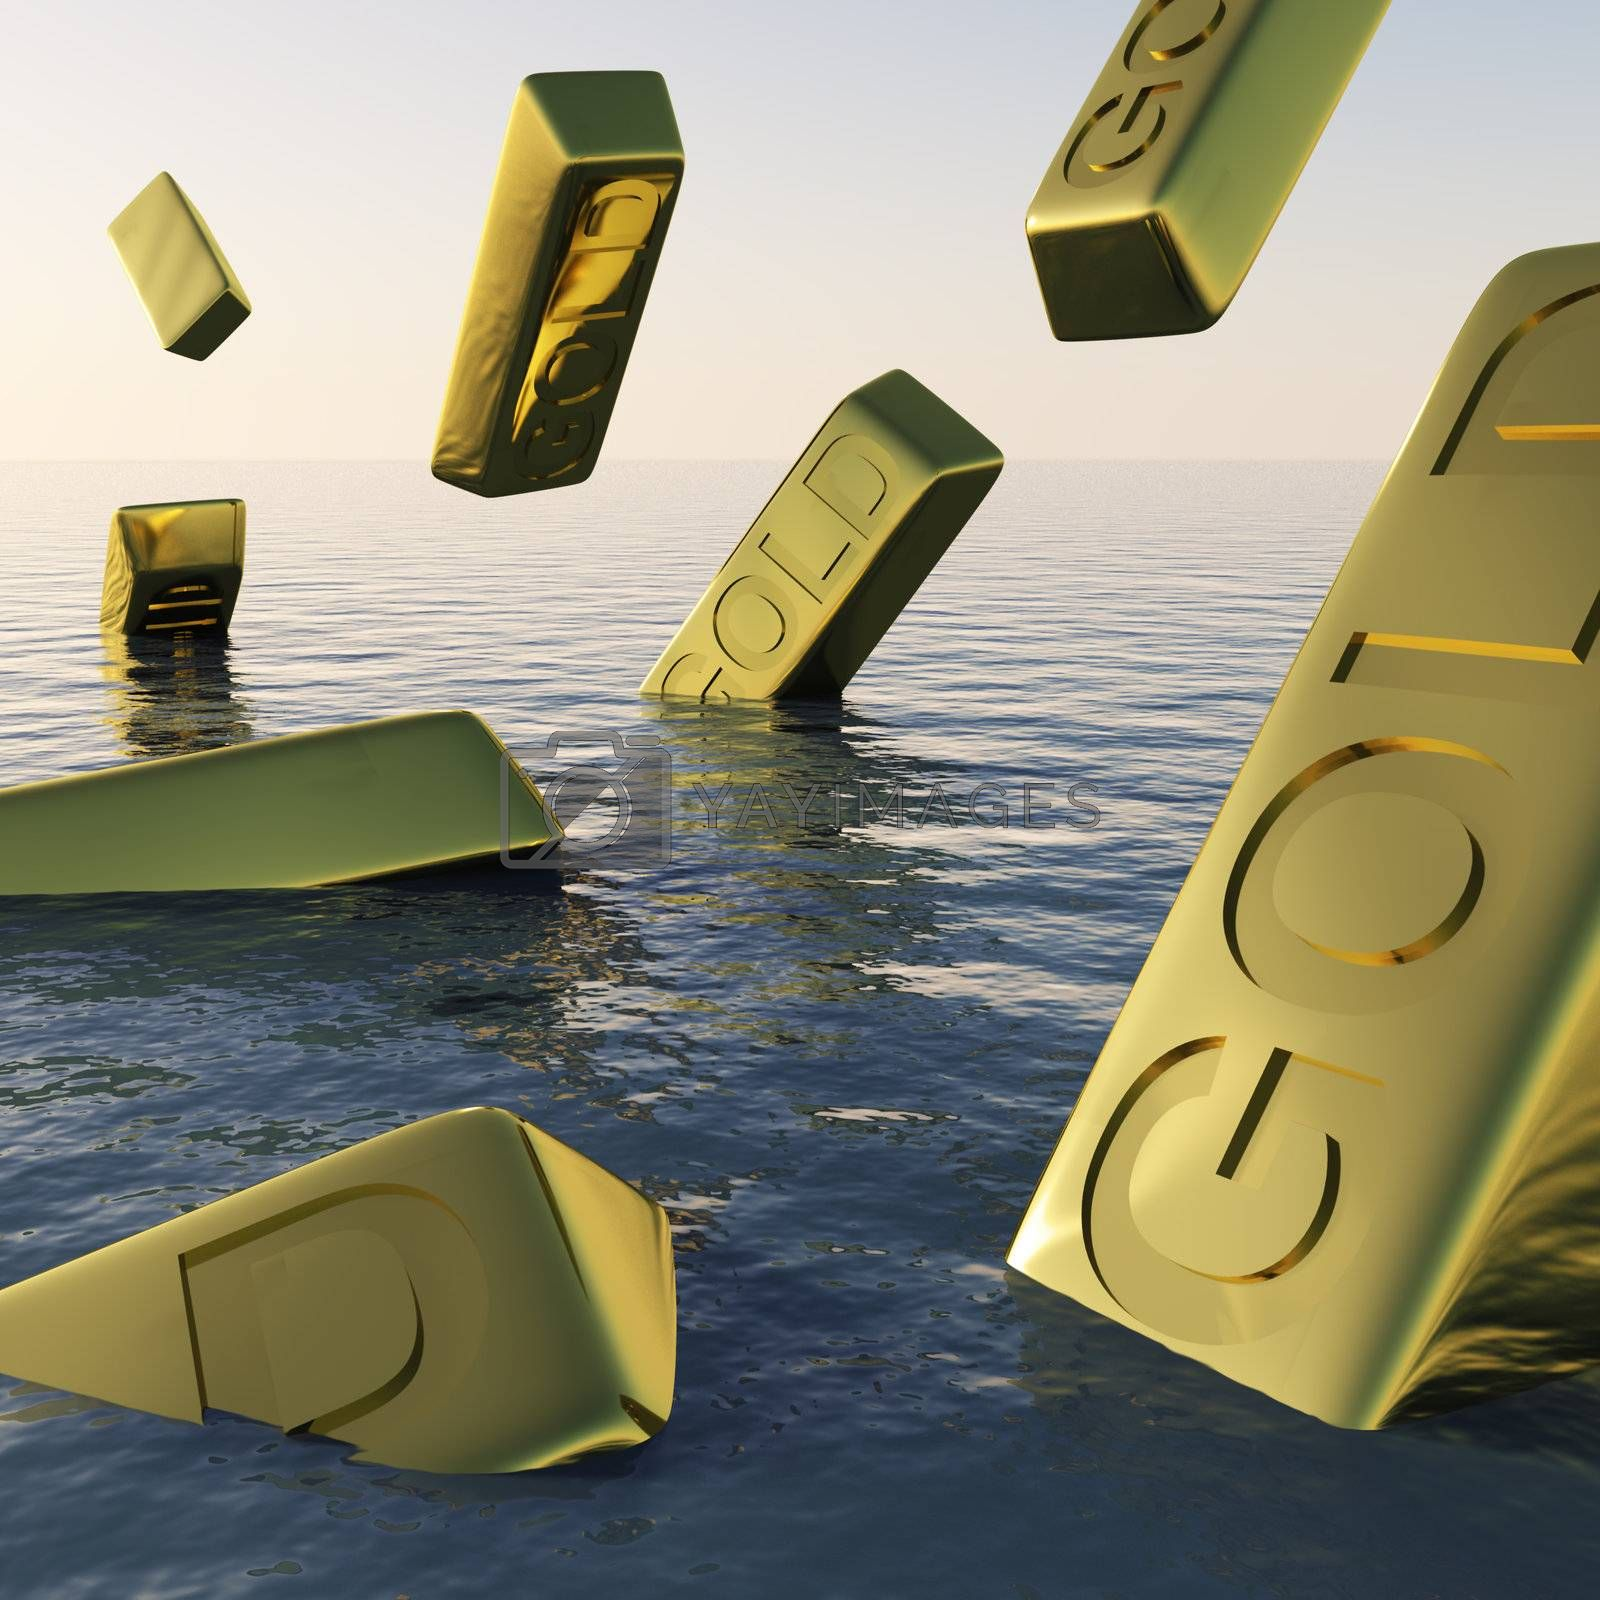 Gold Bars Sinking  Showing Depression Recession And Economic Downturns